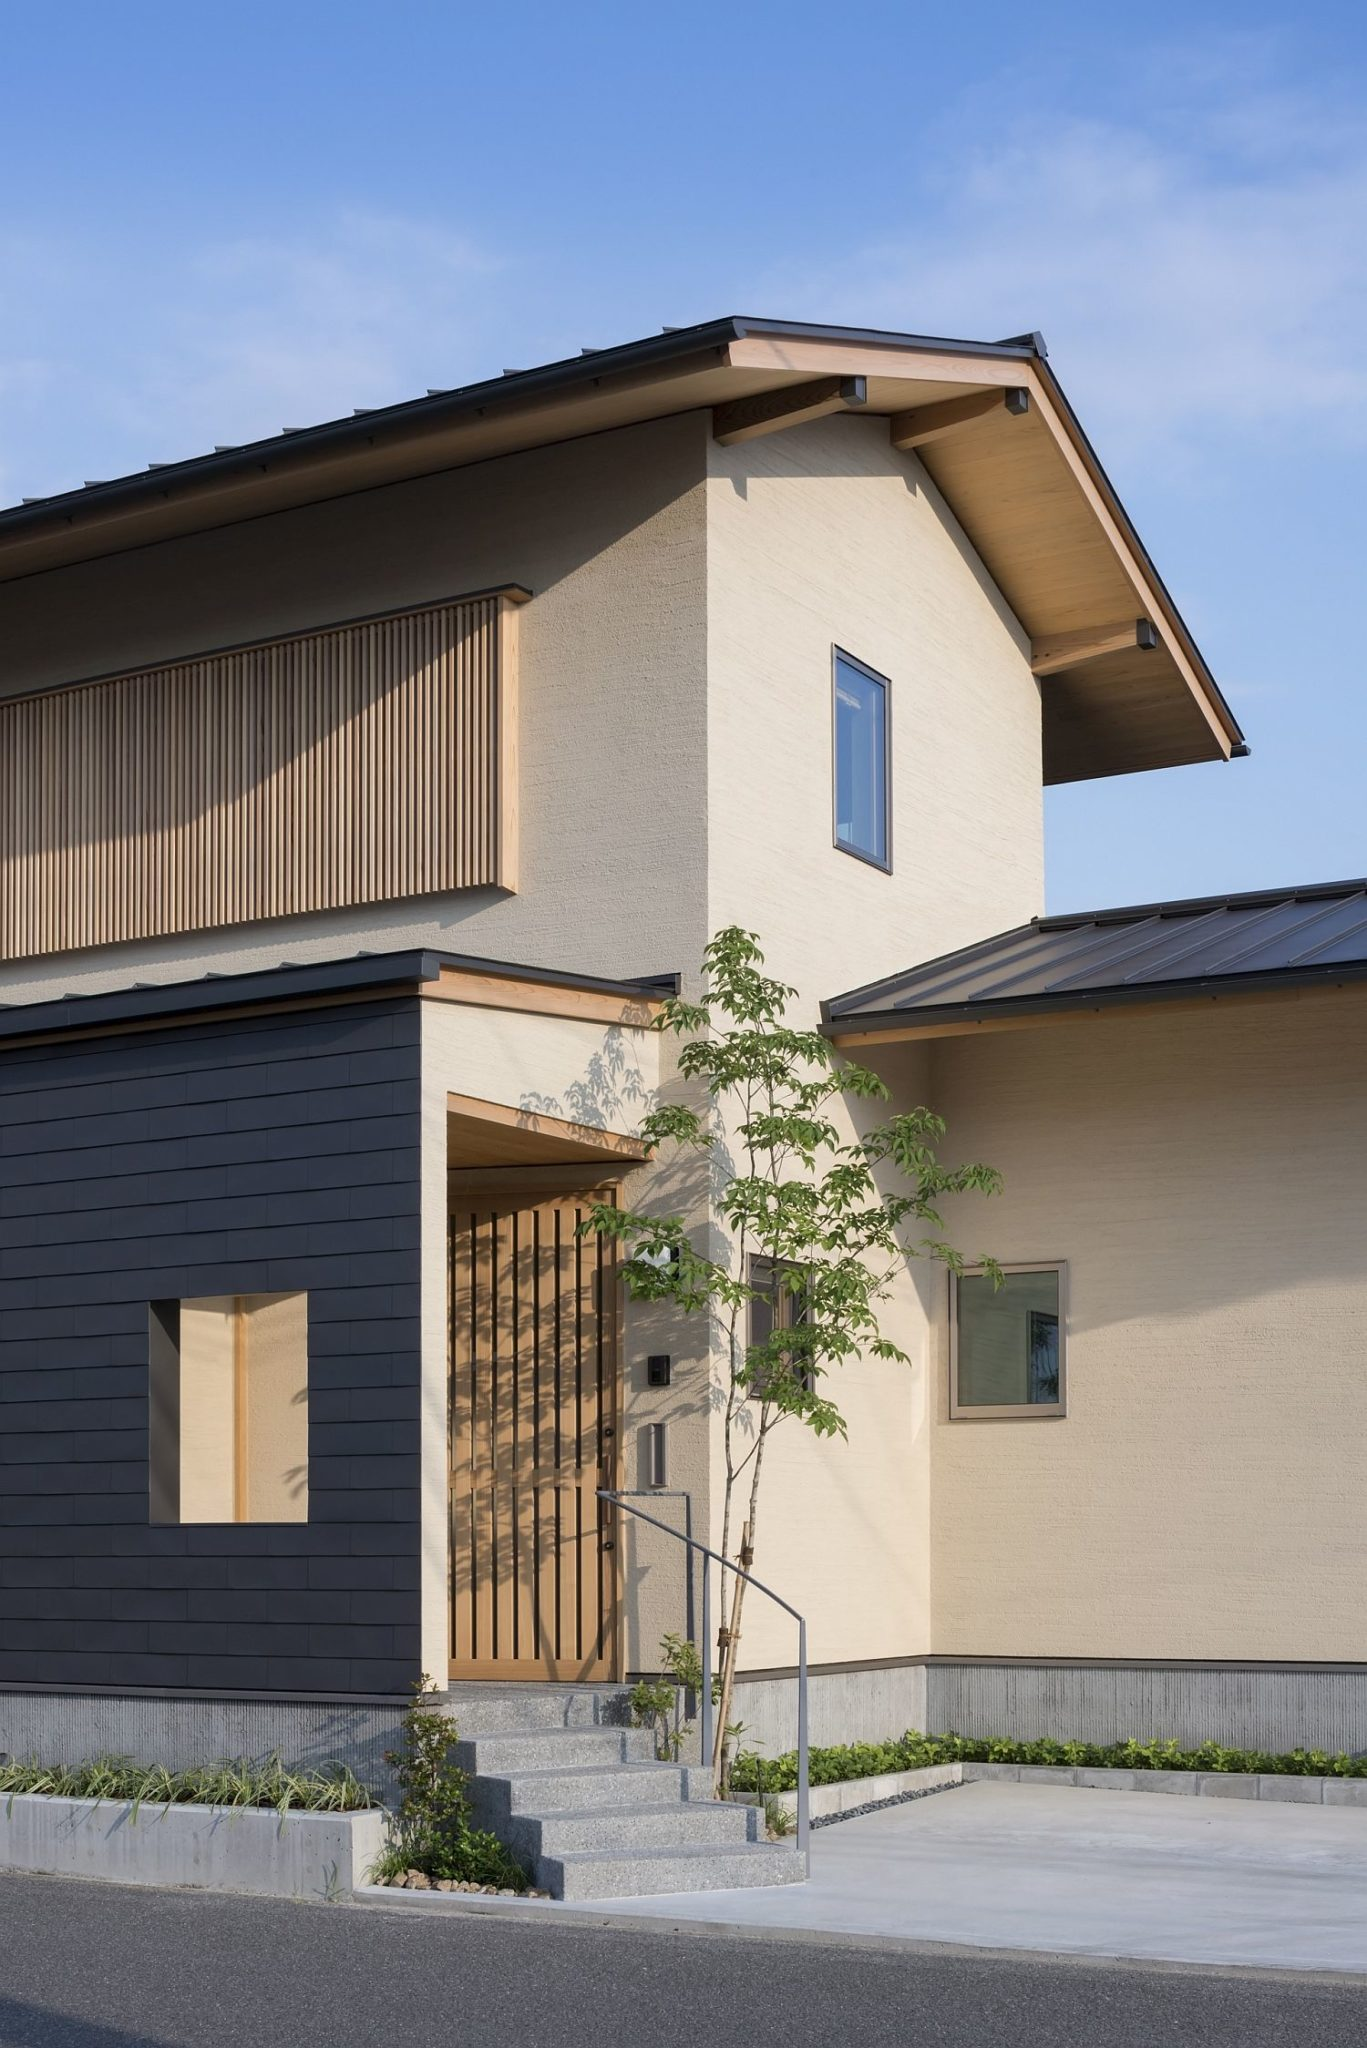 Entrance-to-the-modern-home-in-Japan-built-for-elderly-couple